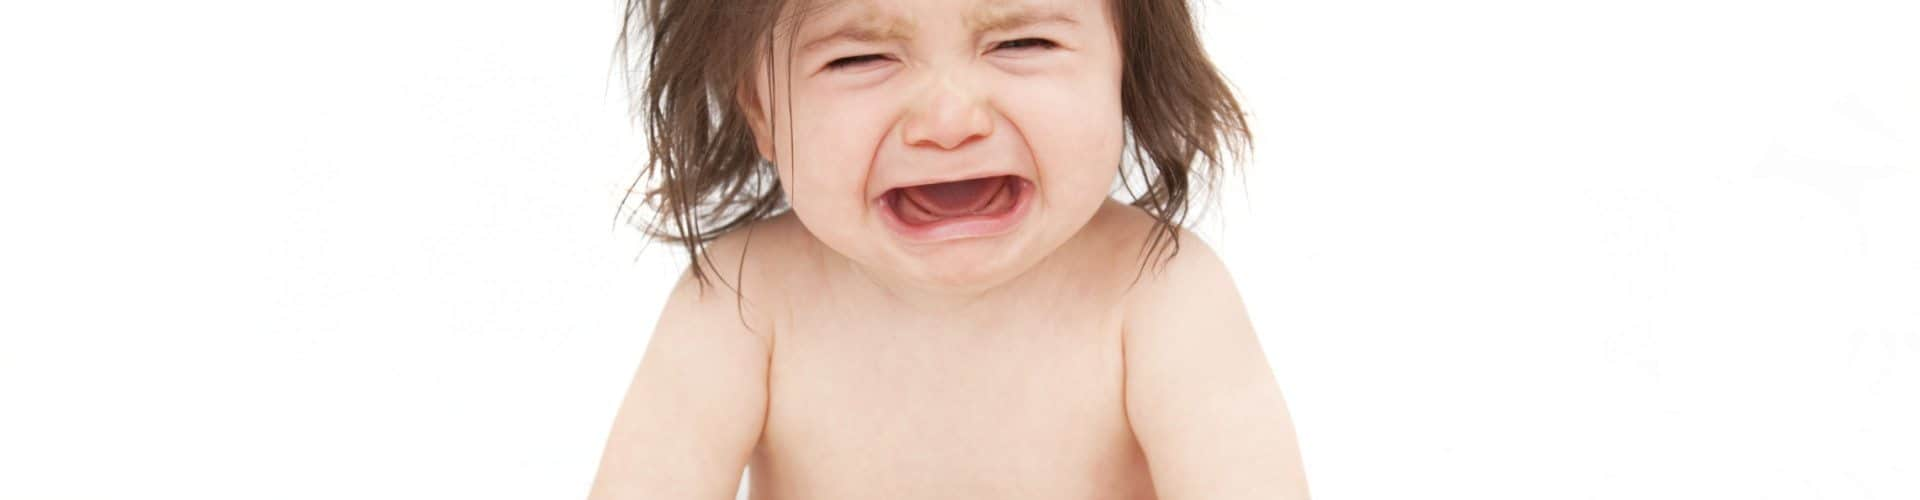 Here Is The Easiest Way To Stop A Crying Baby [VIDEO]